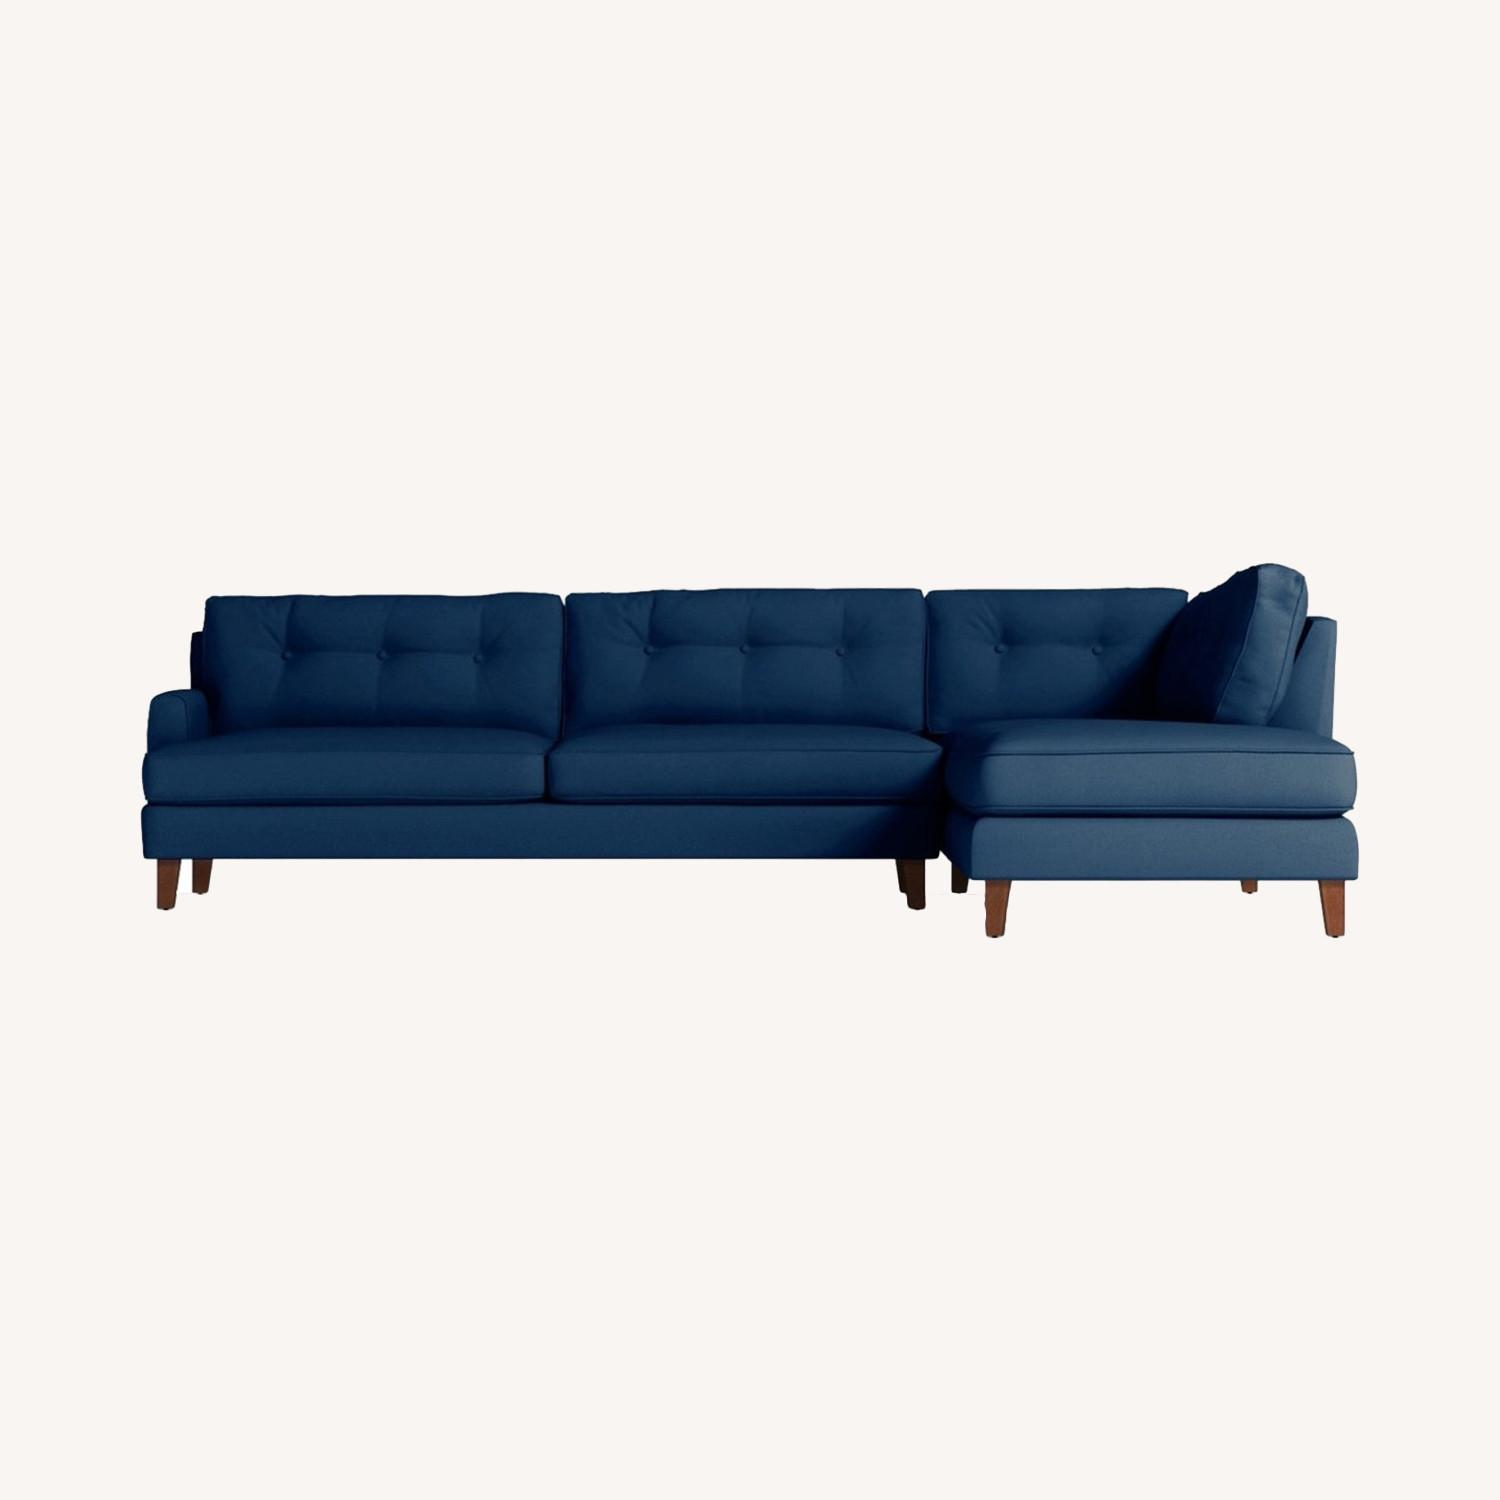 Trendy 2-Piece Sectional Sofa - image-0